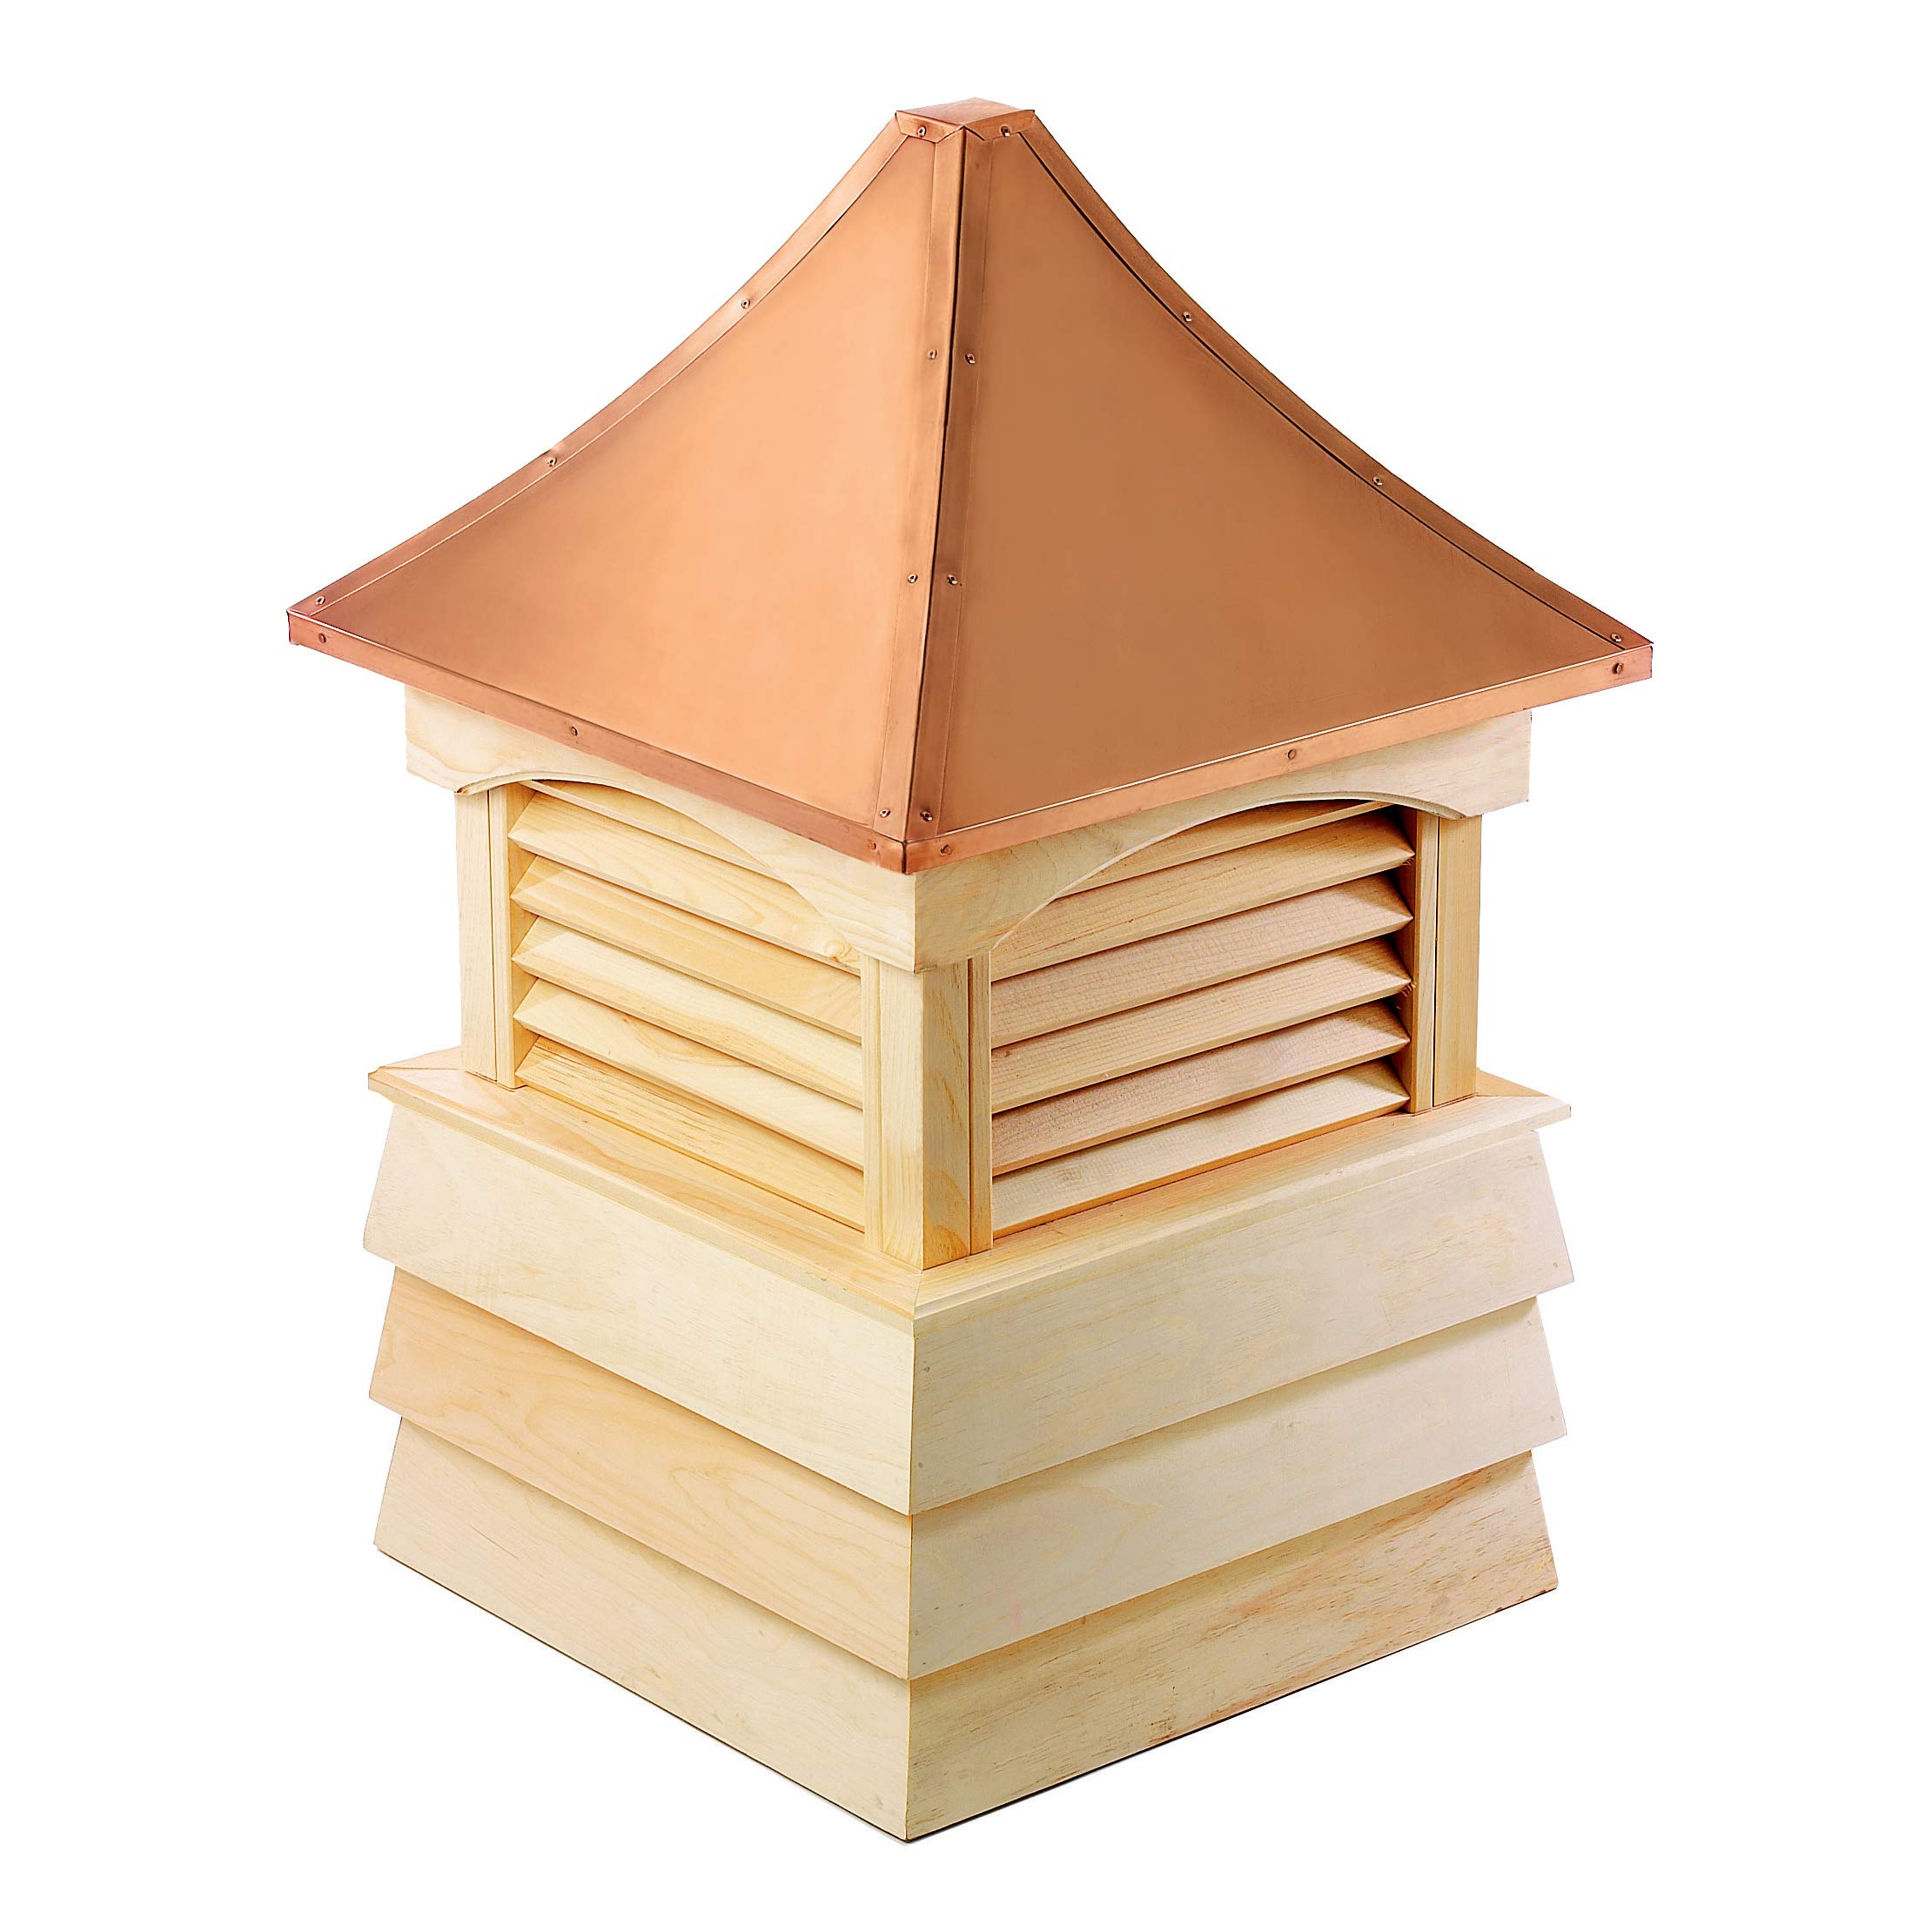 Good Directions Sherwood Wood Shiplap Cupola with Copper Roof 22'' x 30''